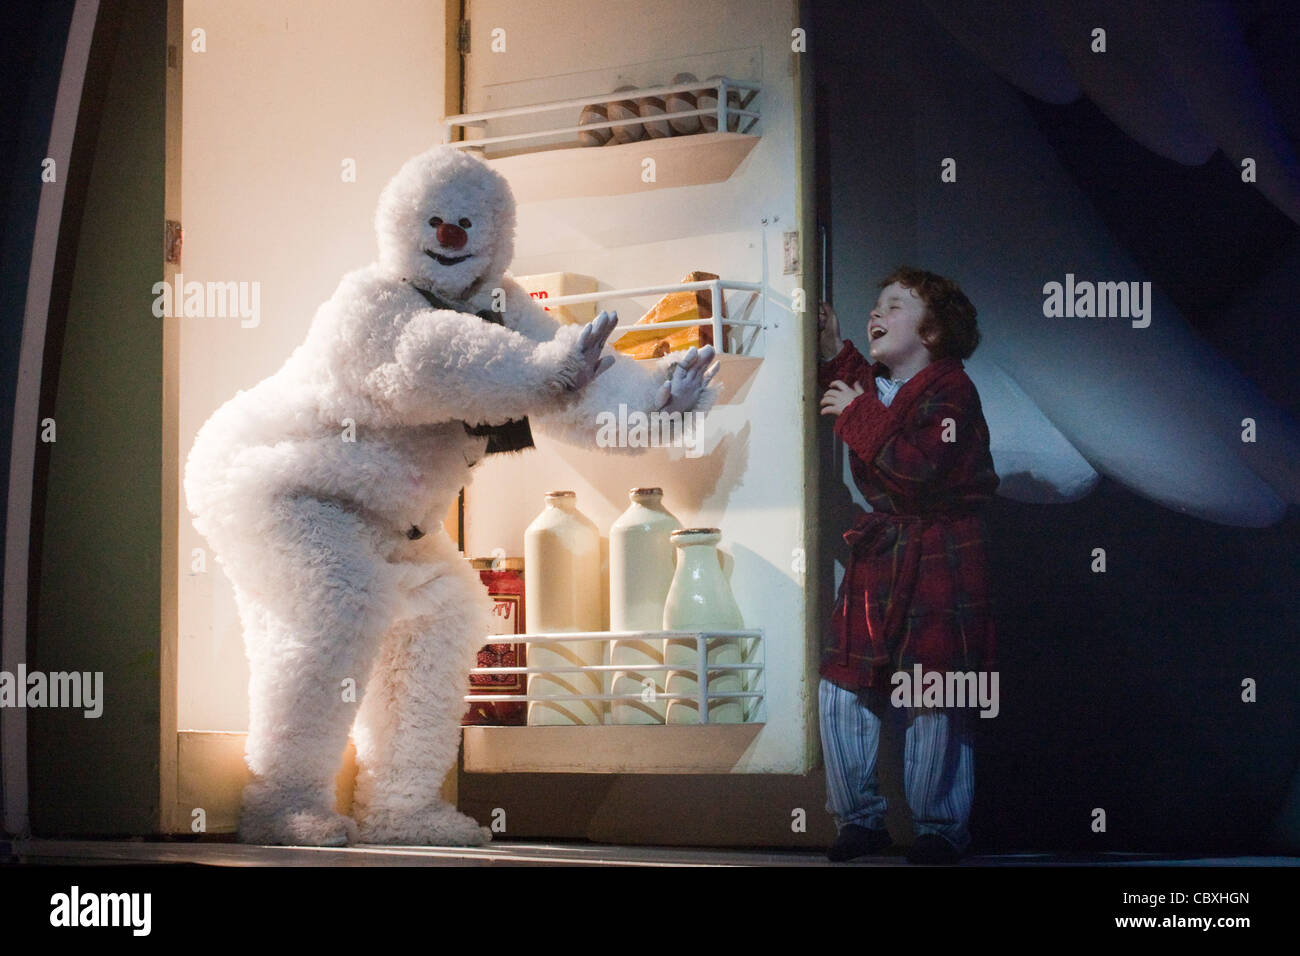 performance-of-the-snowman-at-the-peacoc